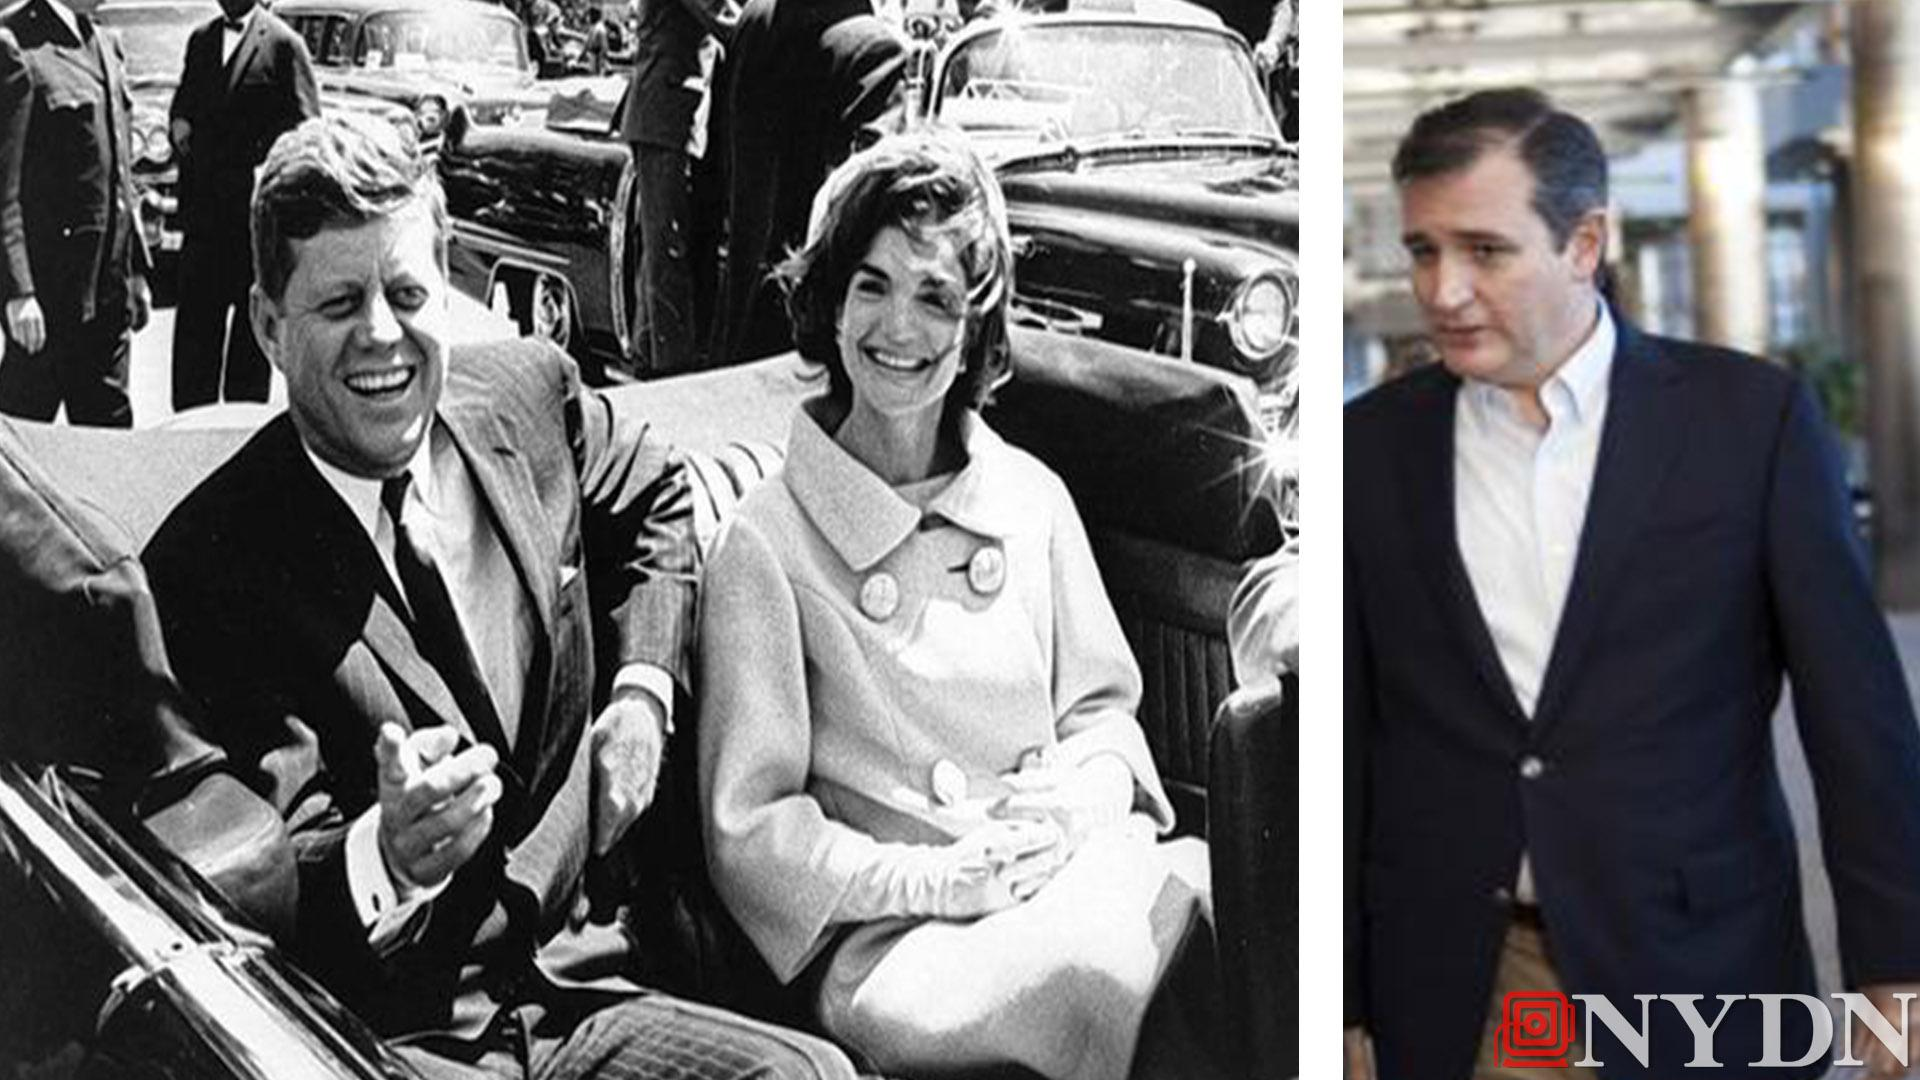 Trump Claims Ted Cruz's Dad Is Connected To John F. Kennedy Assassination